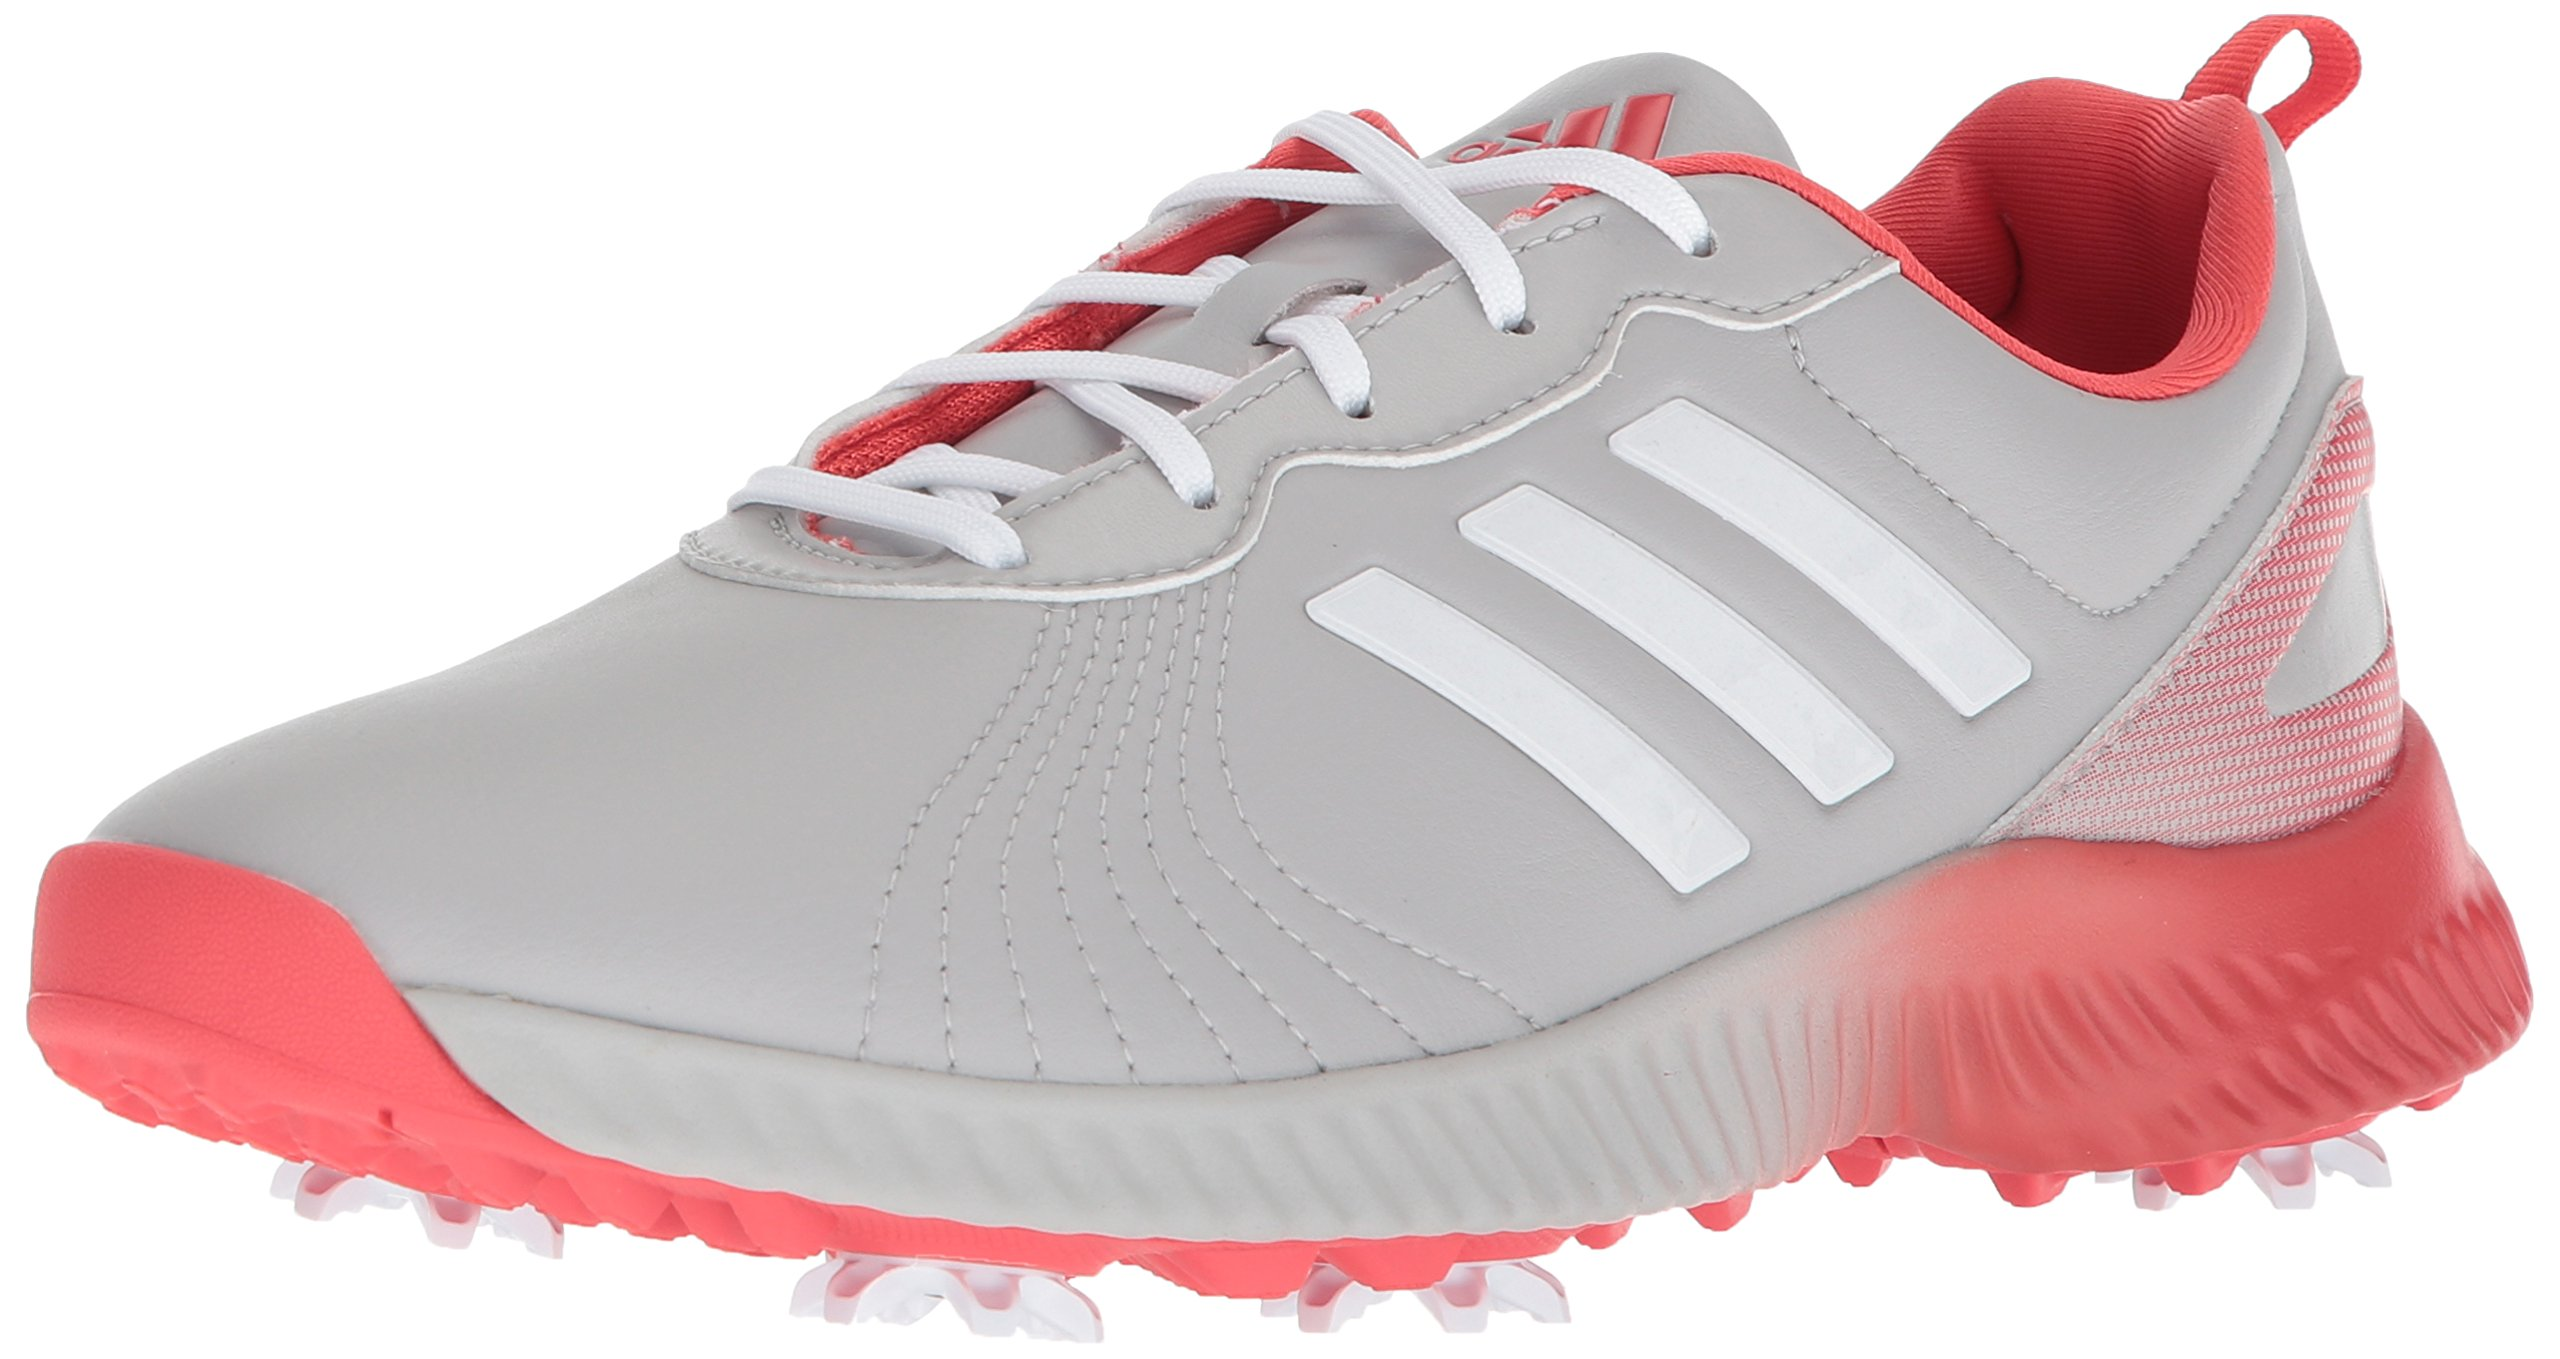 adidas Women's W Response Bounce Golf Shoe, Grey Two FTWR White/Real Coral s, 8 Medium US by adidas